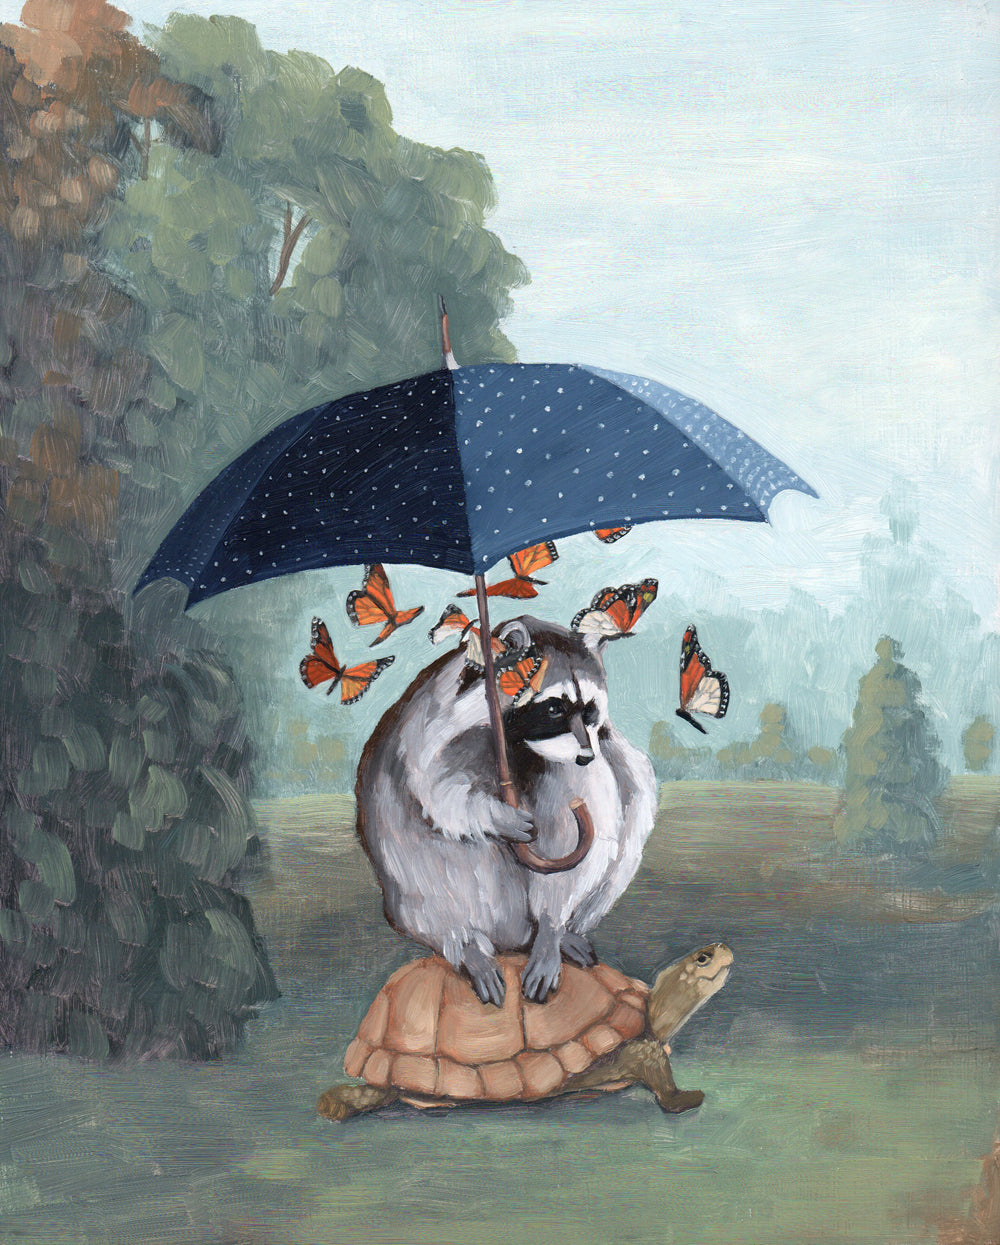 Raccoon w/ Turtle and Butterflies Under Umbrella - 8x10 print